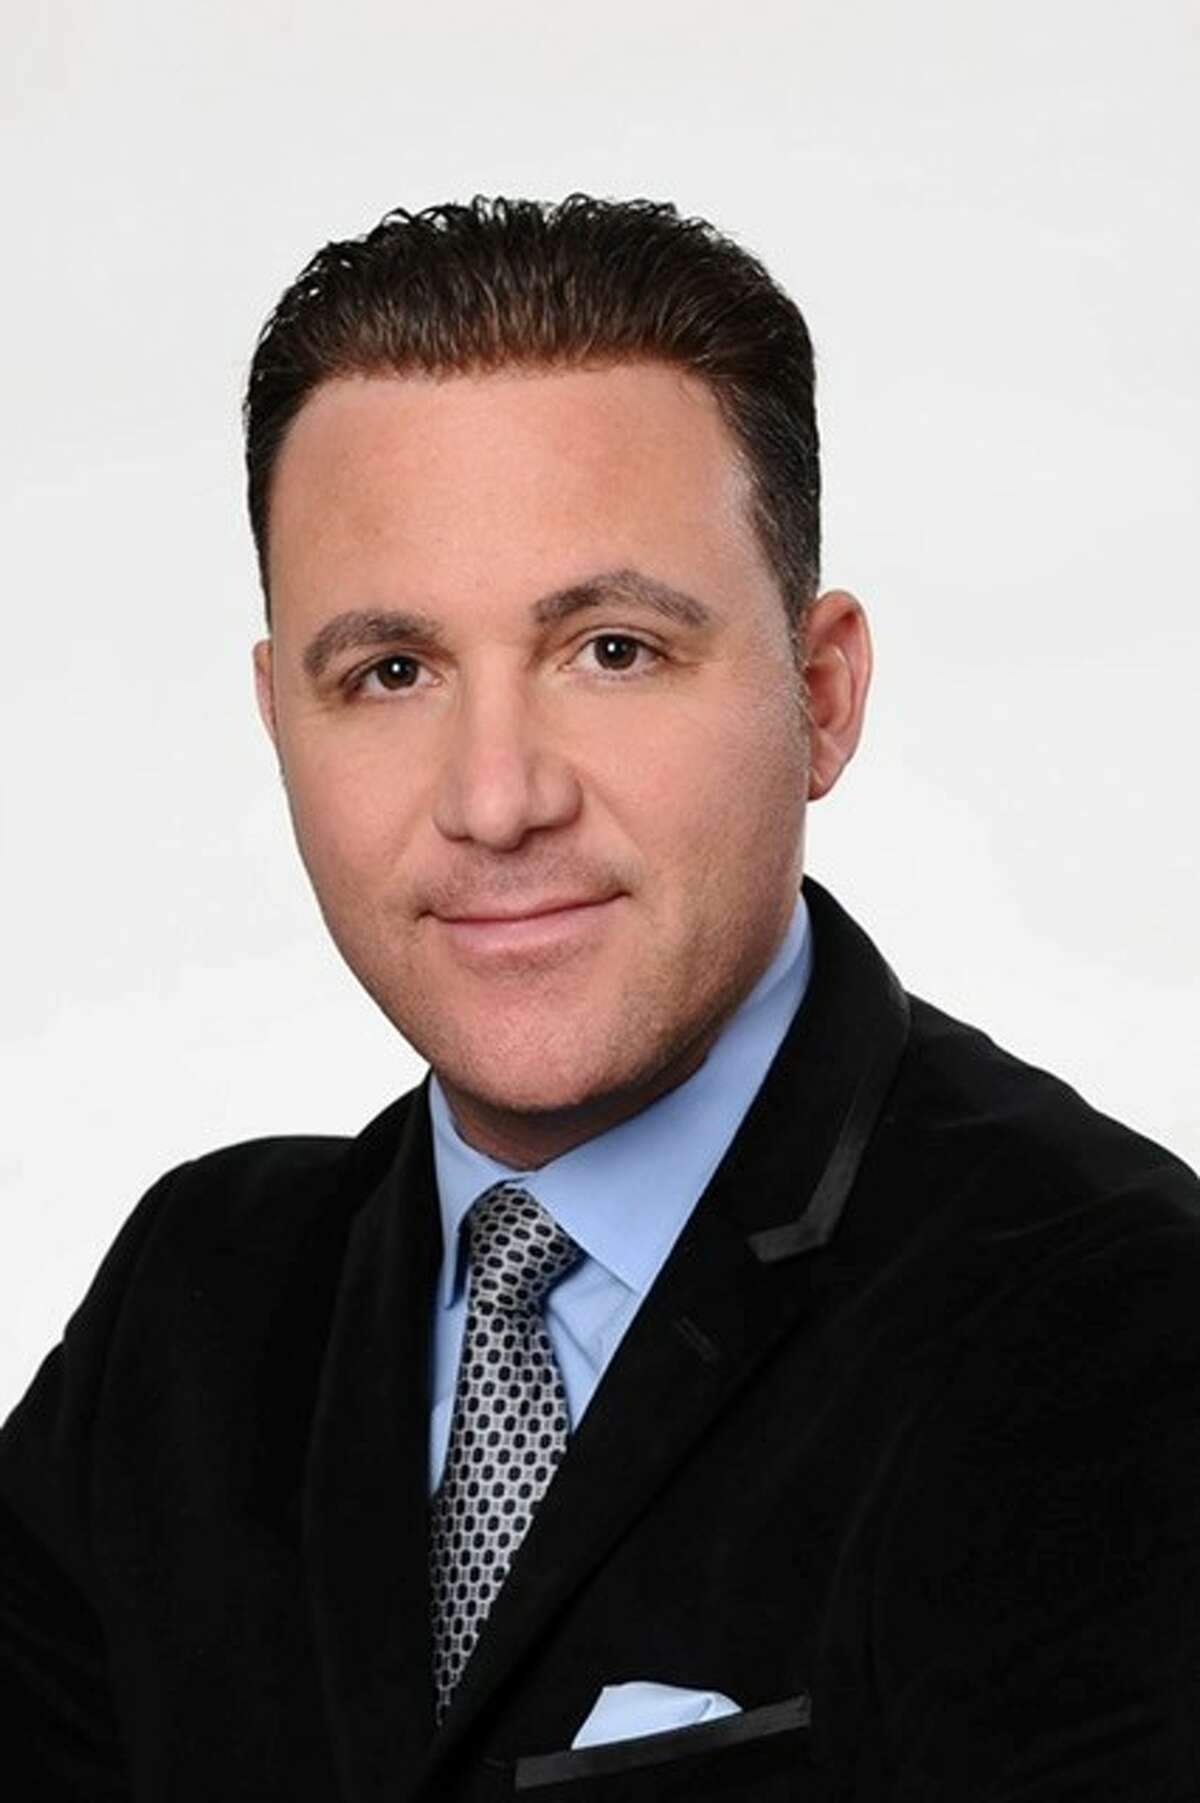 Anthony Gucciardo is the head of Gucciardo Real Estate Group.